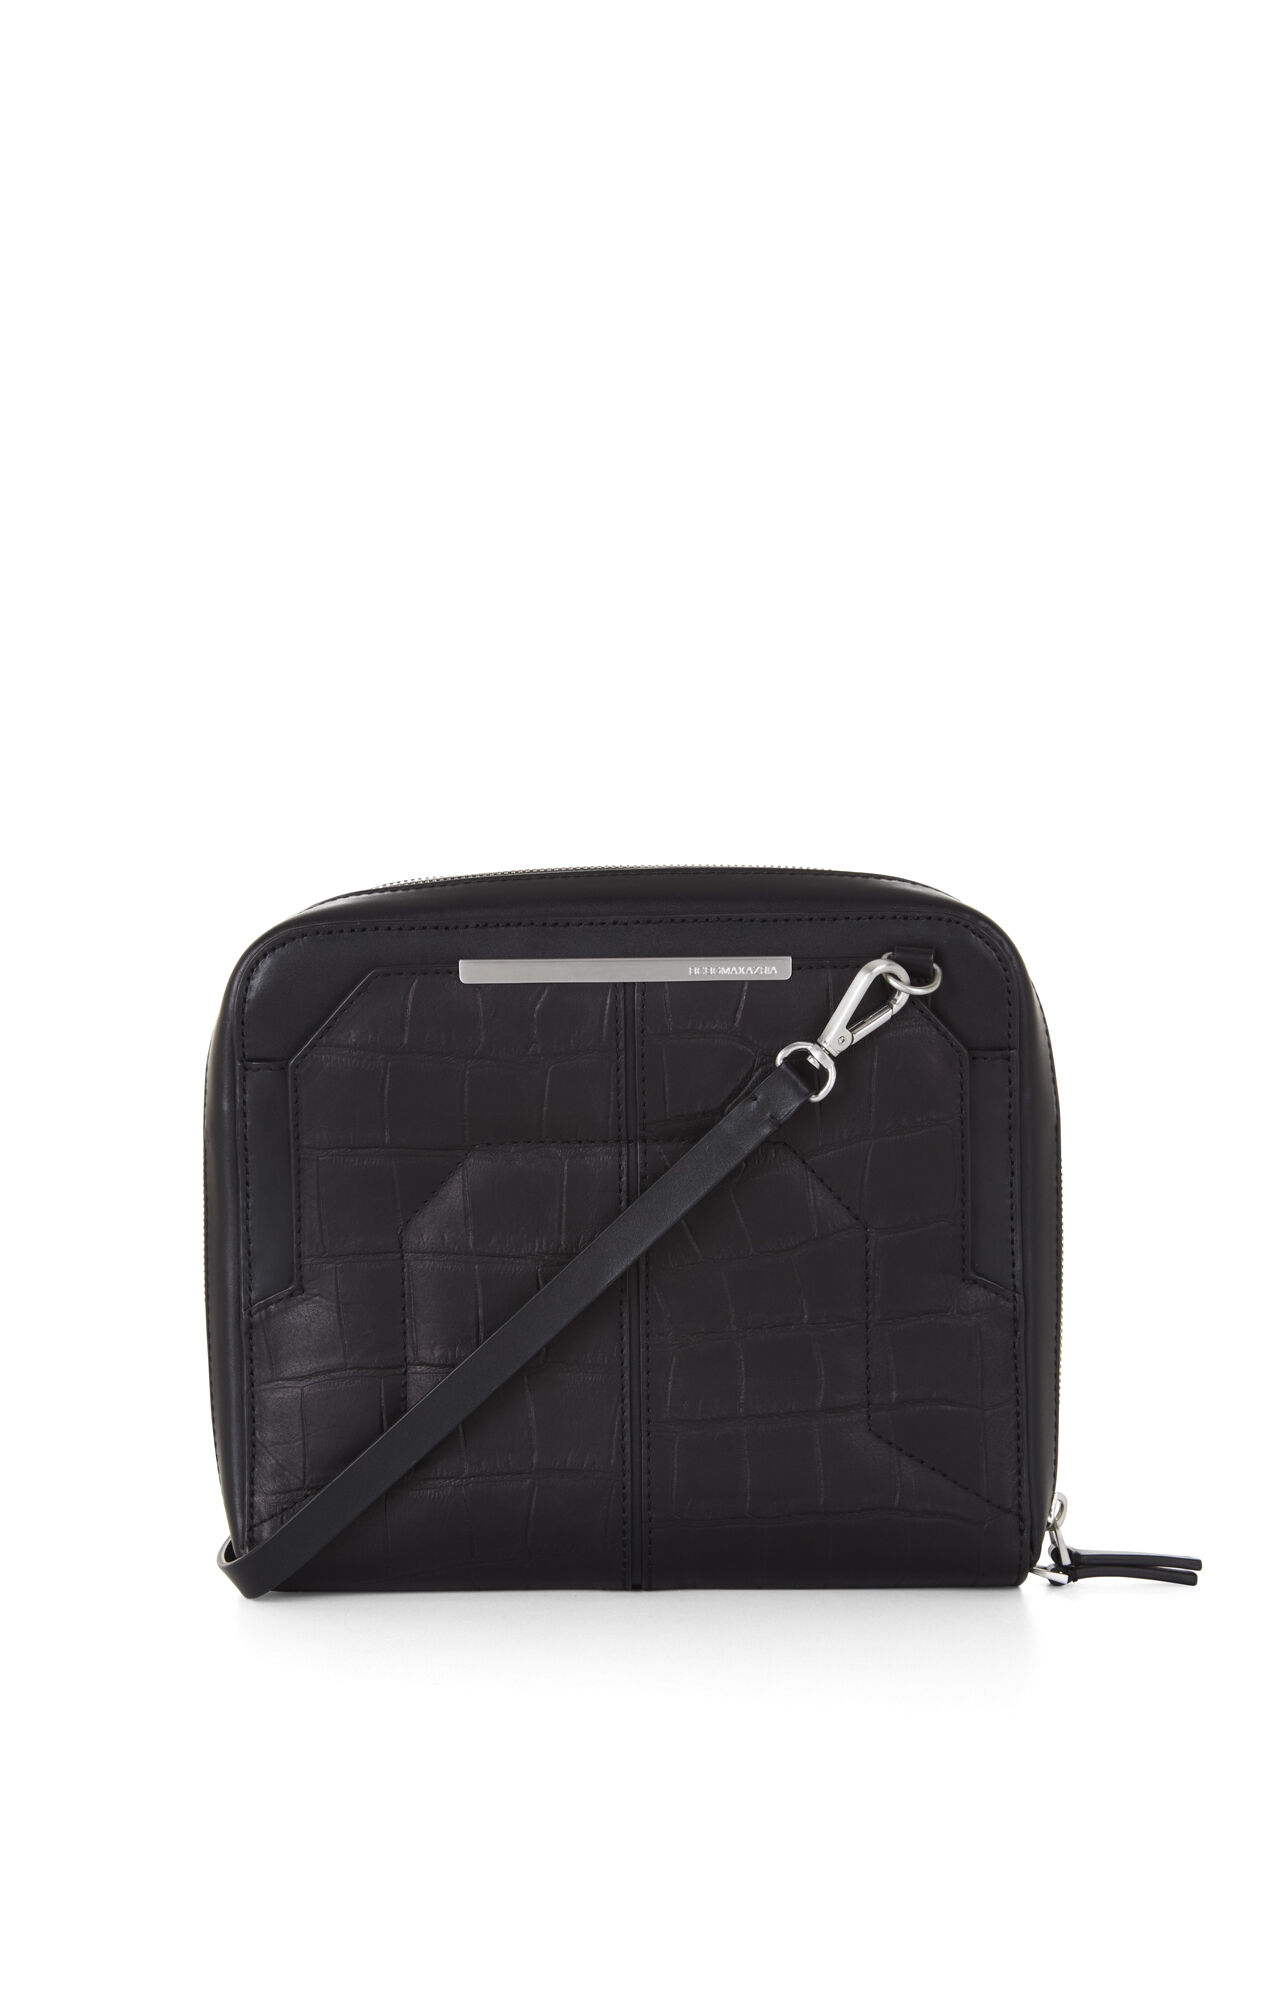 Runway Raven Convertible Messenger Bag